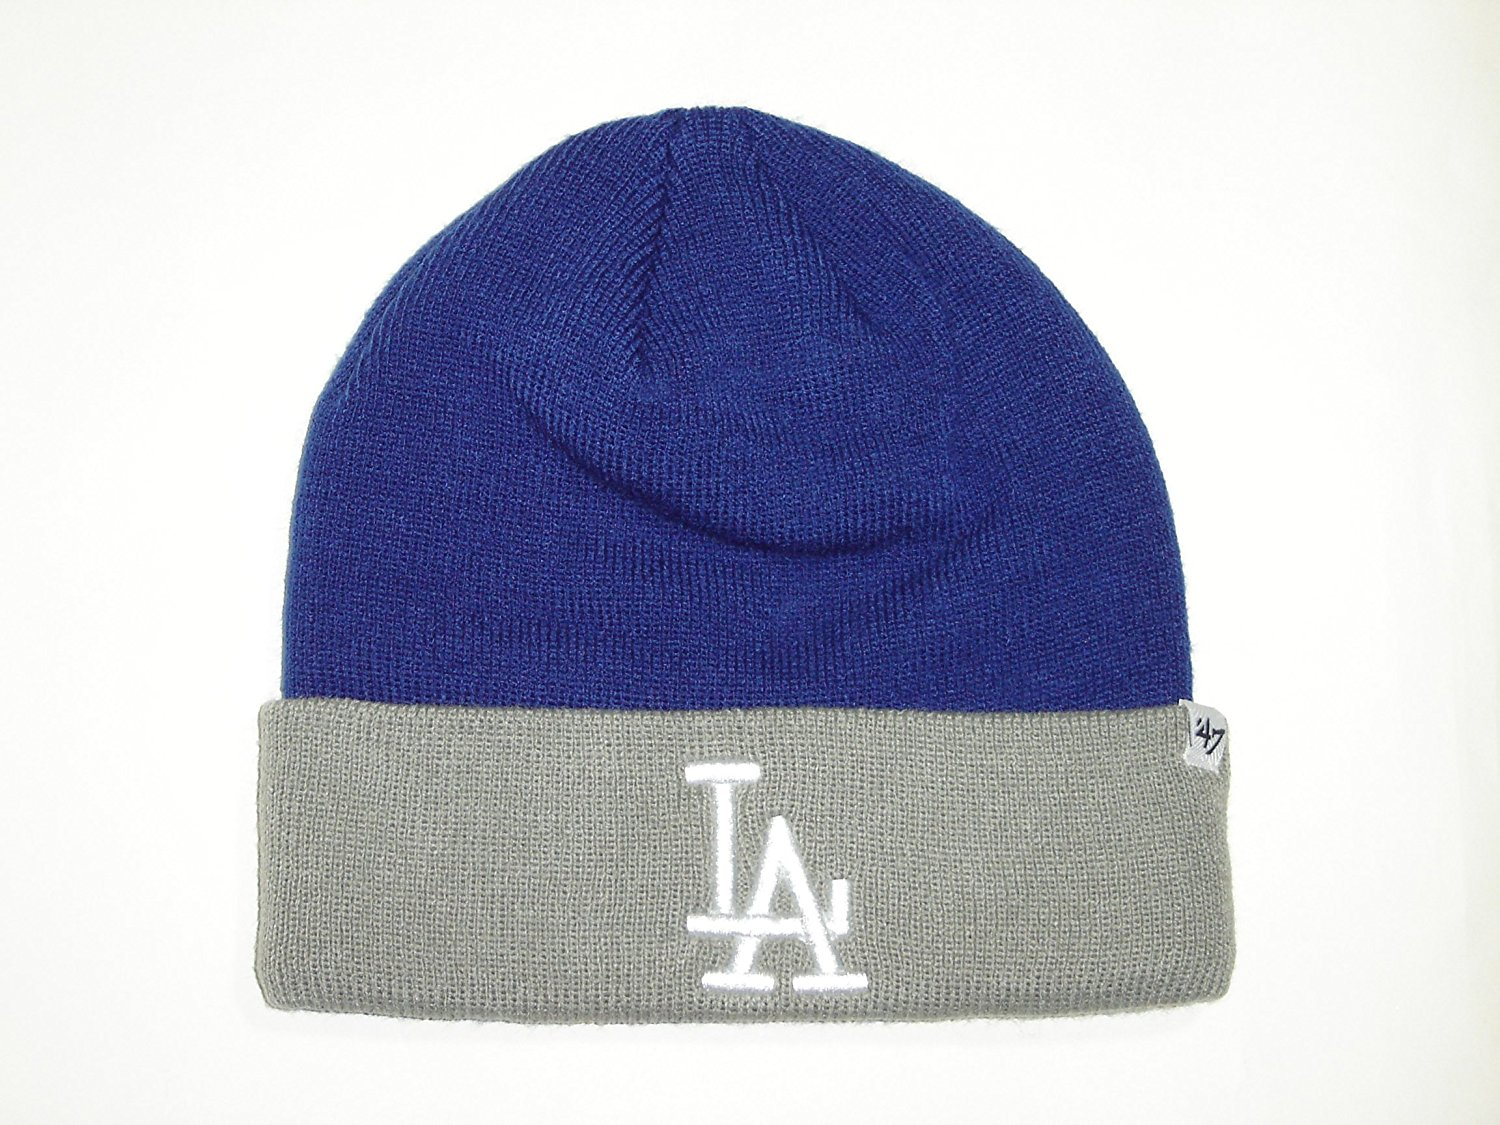 a8d465efda2 Get Quotations · MLB  47 Brand LA Dodgers Royal Blue 2Tone Classic Cuffed  Knit Winter Beanie Hat